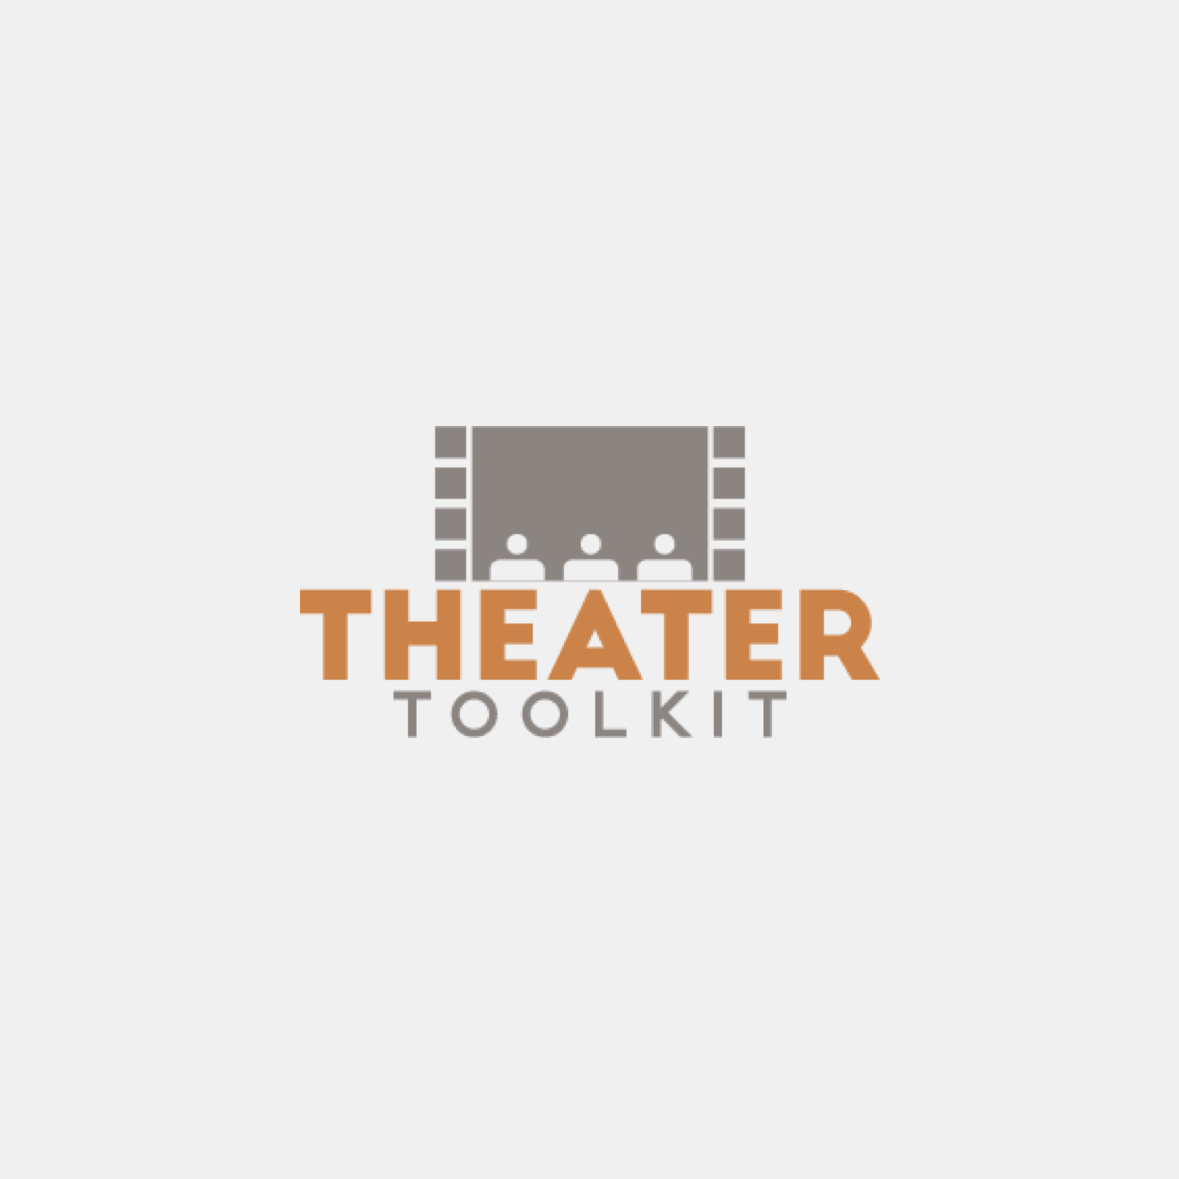 Copy of Theater Toolkit